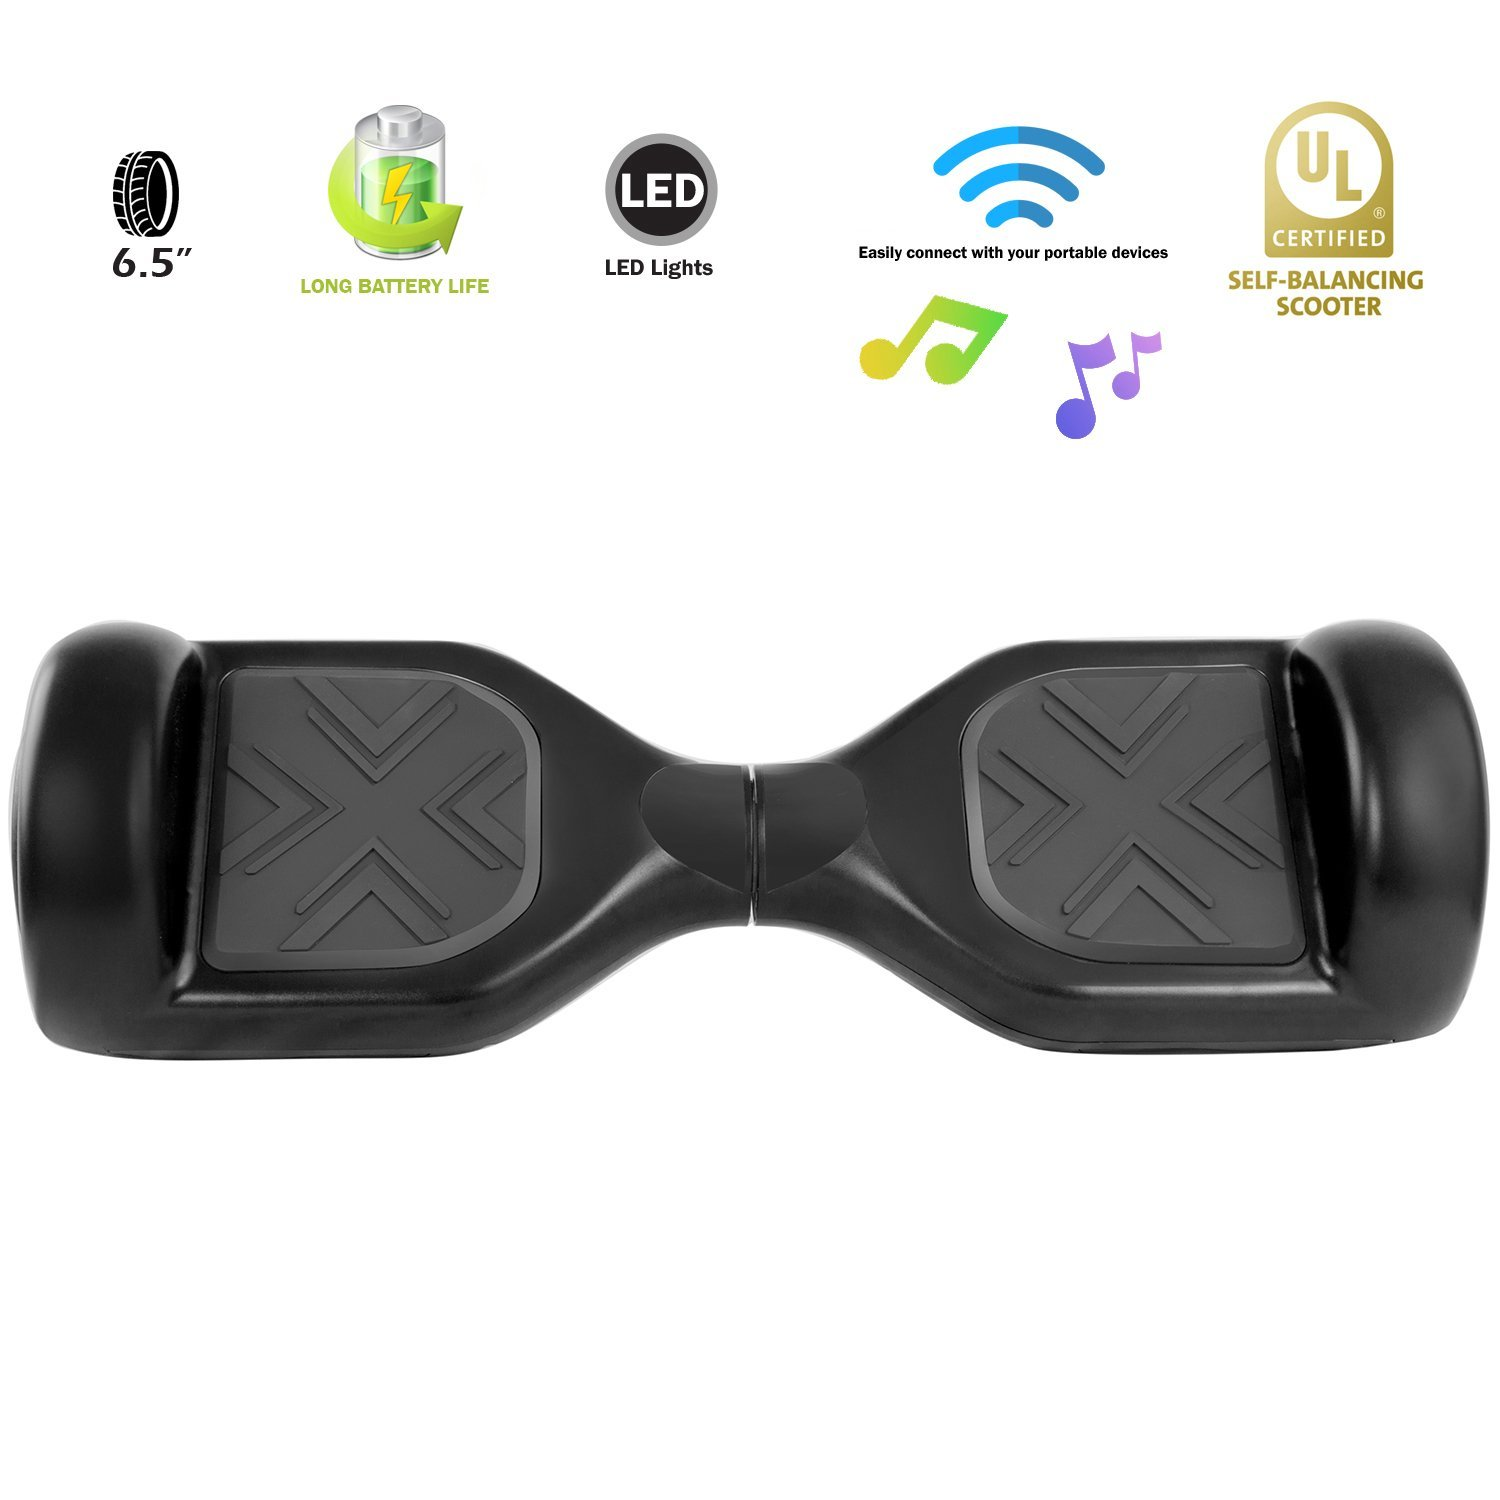 XPRIT Hoverboard w/Bluetooth Speaker (Black) by XPRIT (Image #6)